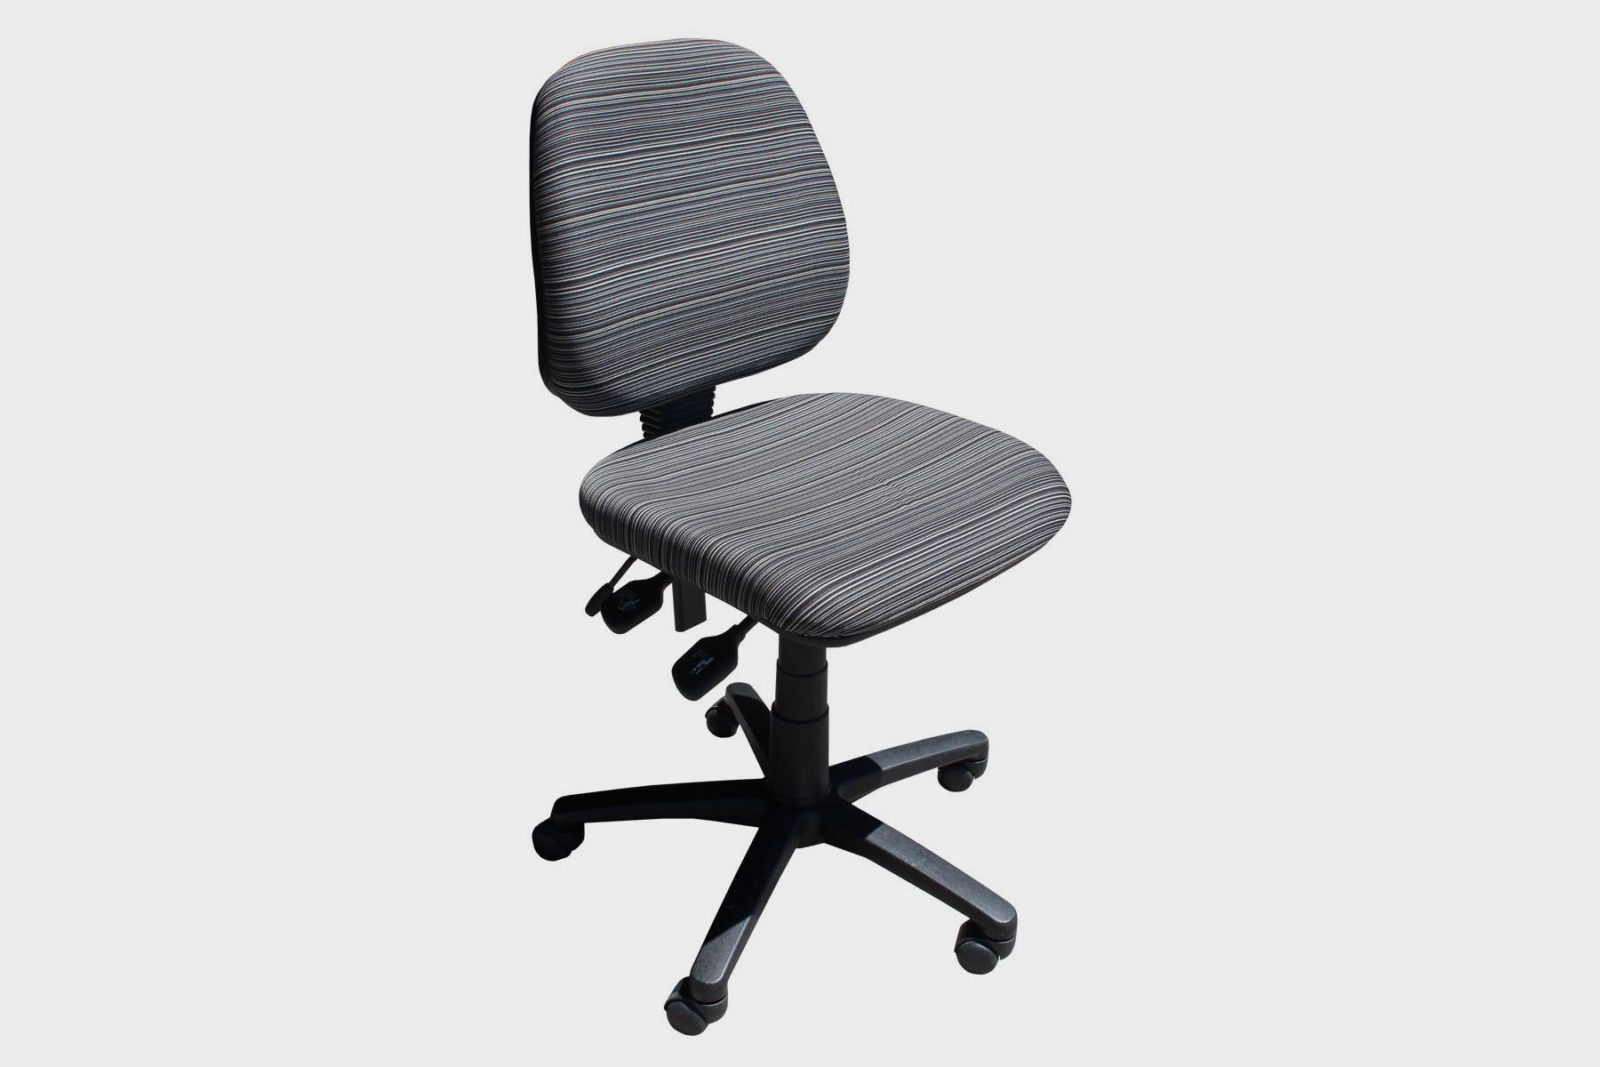 New Year Office Furniture Clearance Sale Up To 50 Off Egans Wise Office Furniture